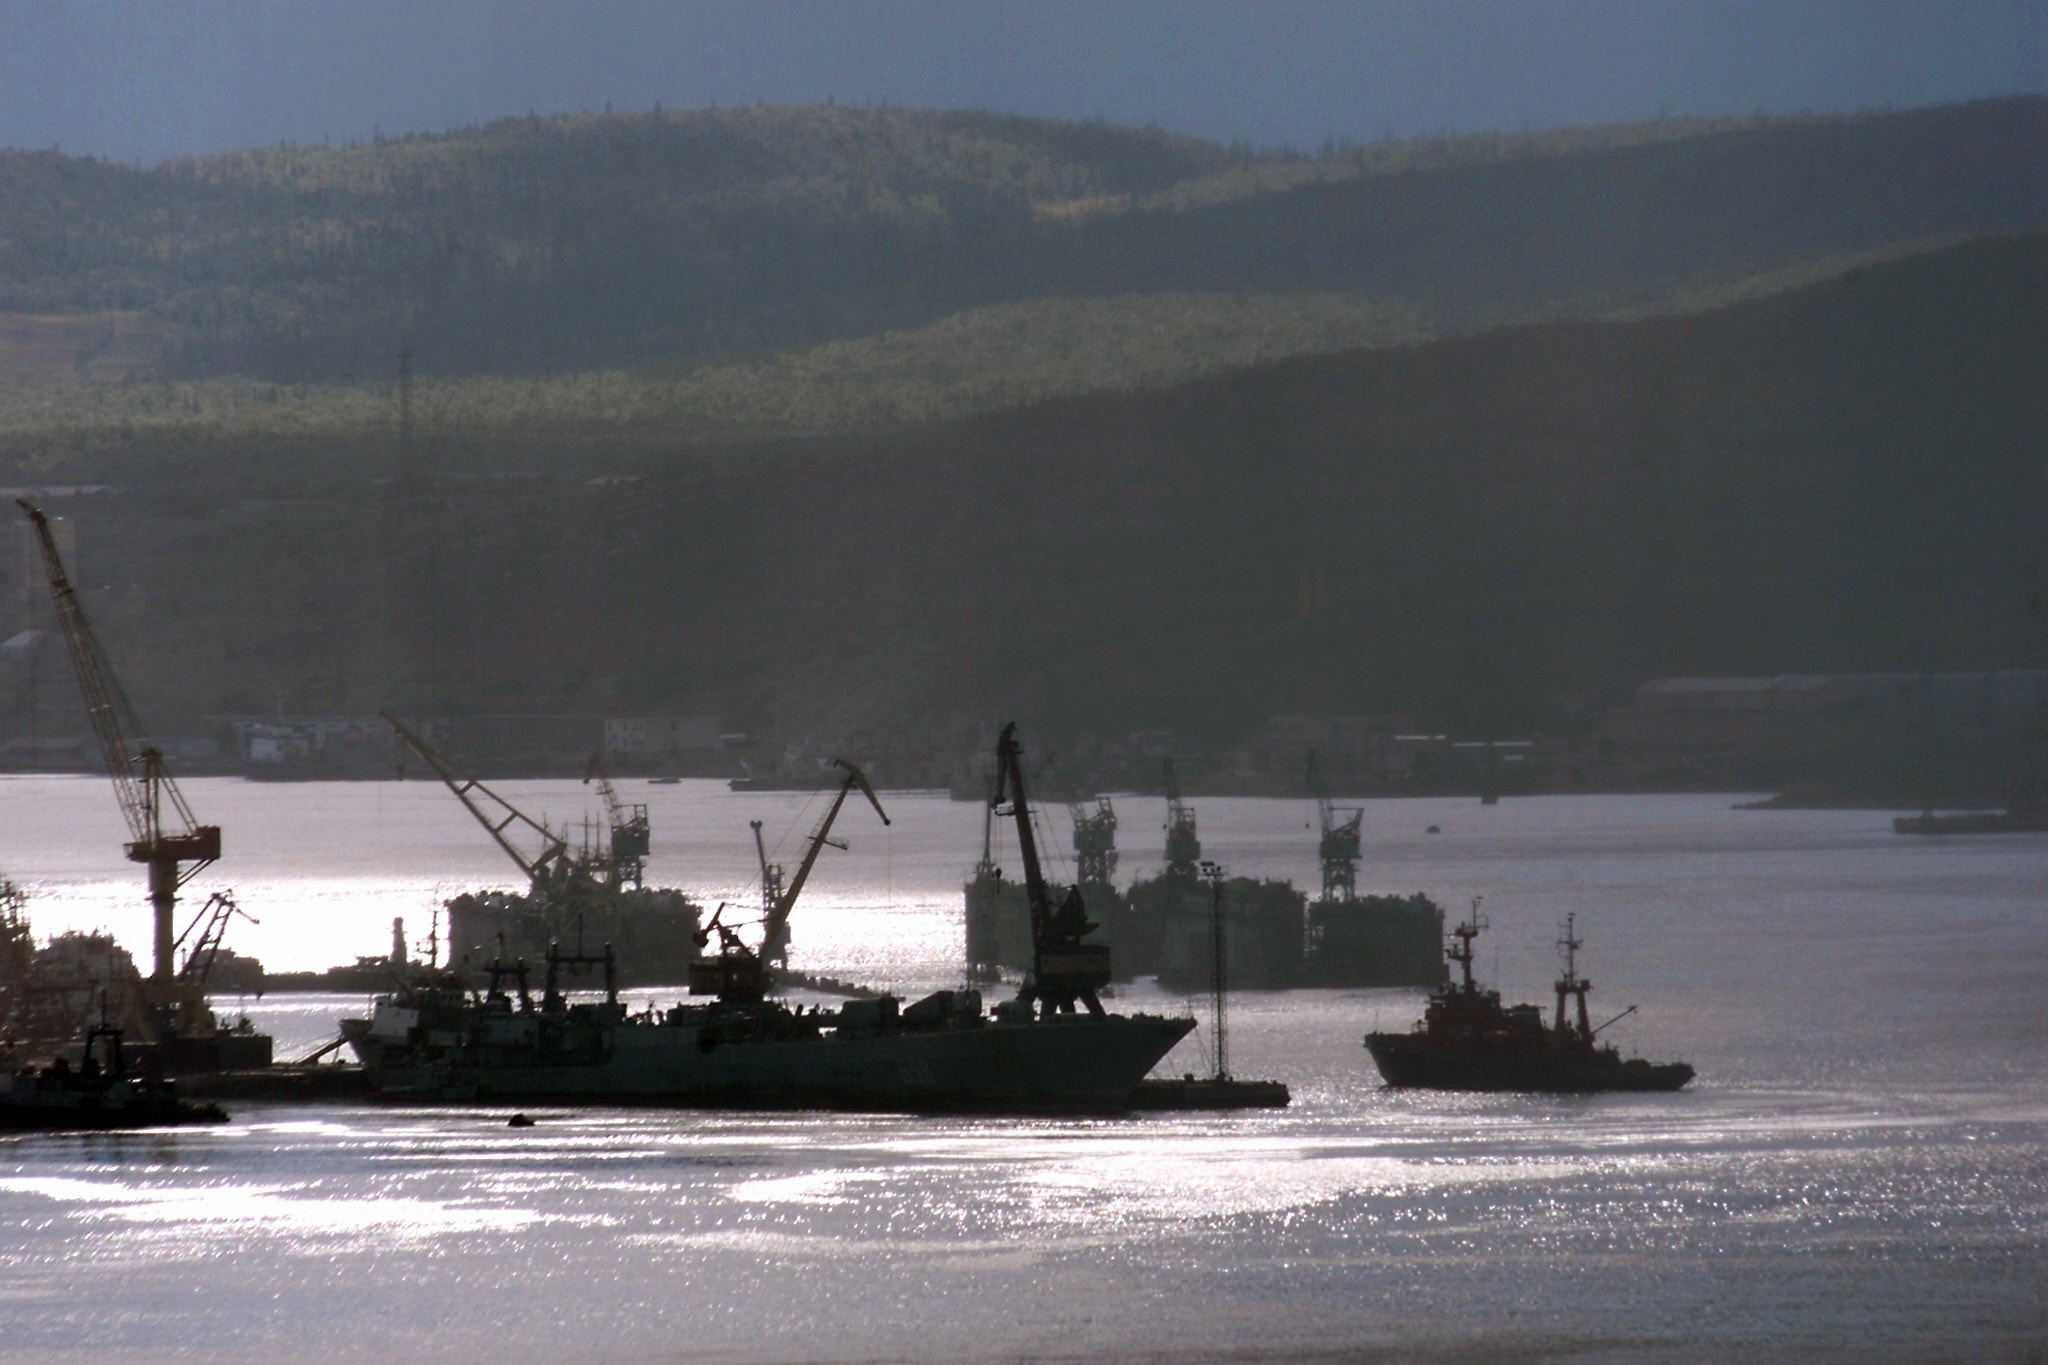 A Russian fishing boat enters  northern port of Murmansk in Kol'skiy (Kola) peninsula on the Barents Sea. (Alexander Nemenov/AFP/Getty Images)